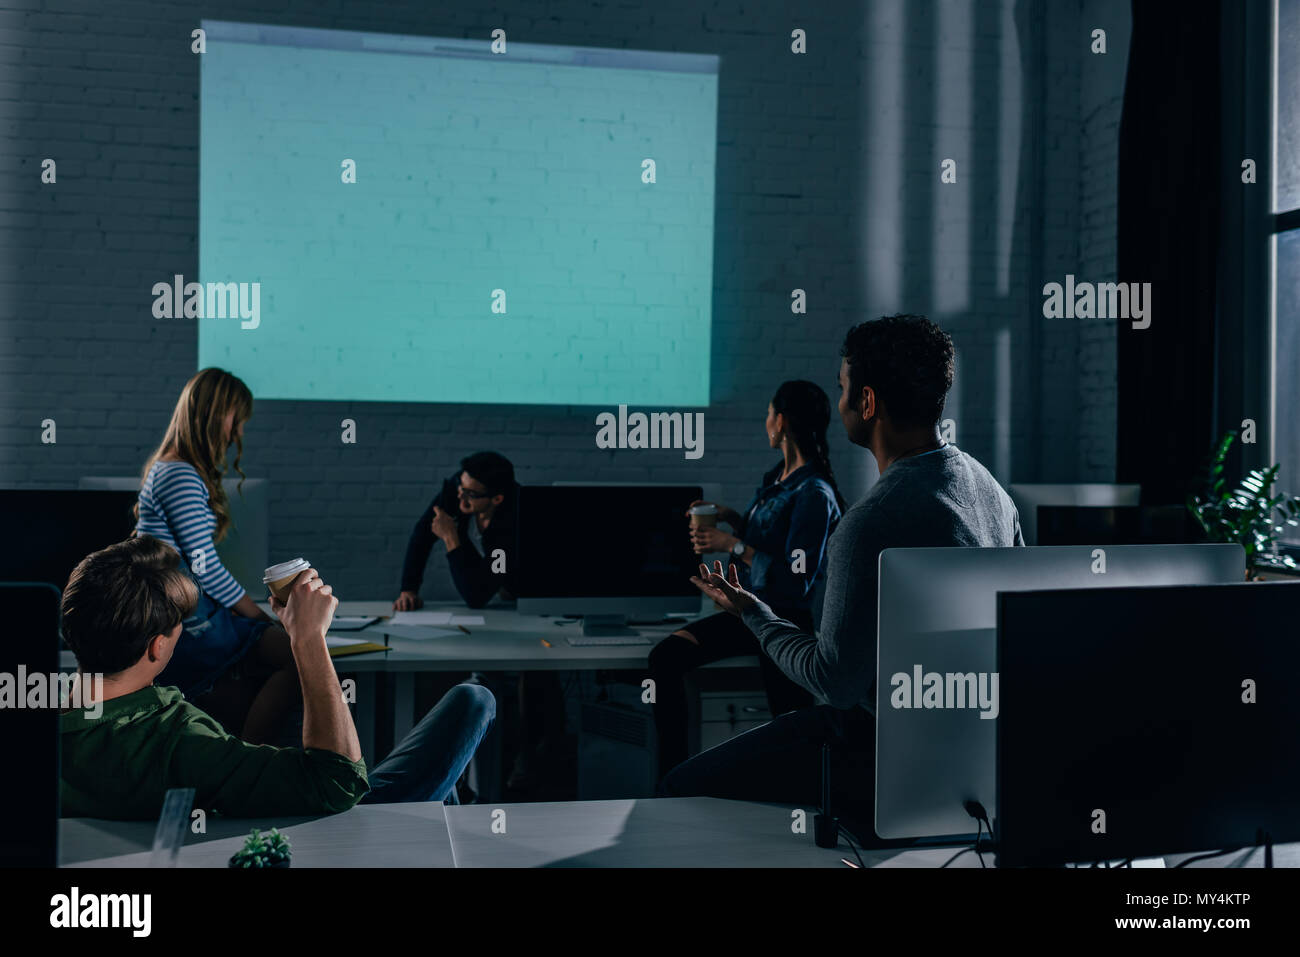 people watching presentation in office at nighttime. blank screen - Stock Image